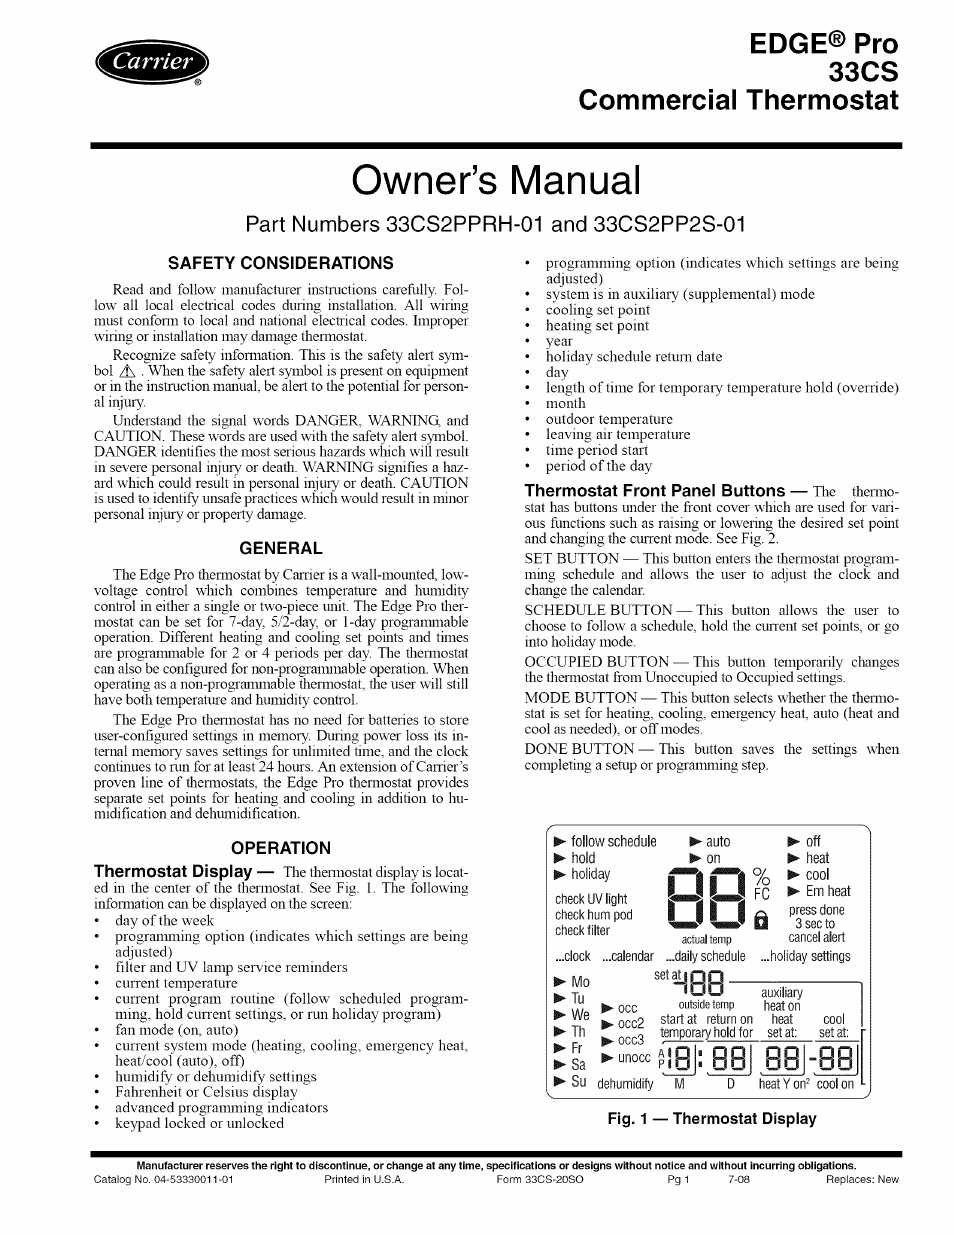 carrier edge pro 33cs user manual 7 pages rh manualsdir com carrier edge thermostat troubleshooting carrier edge thermostat service manual